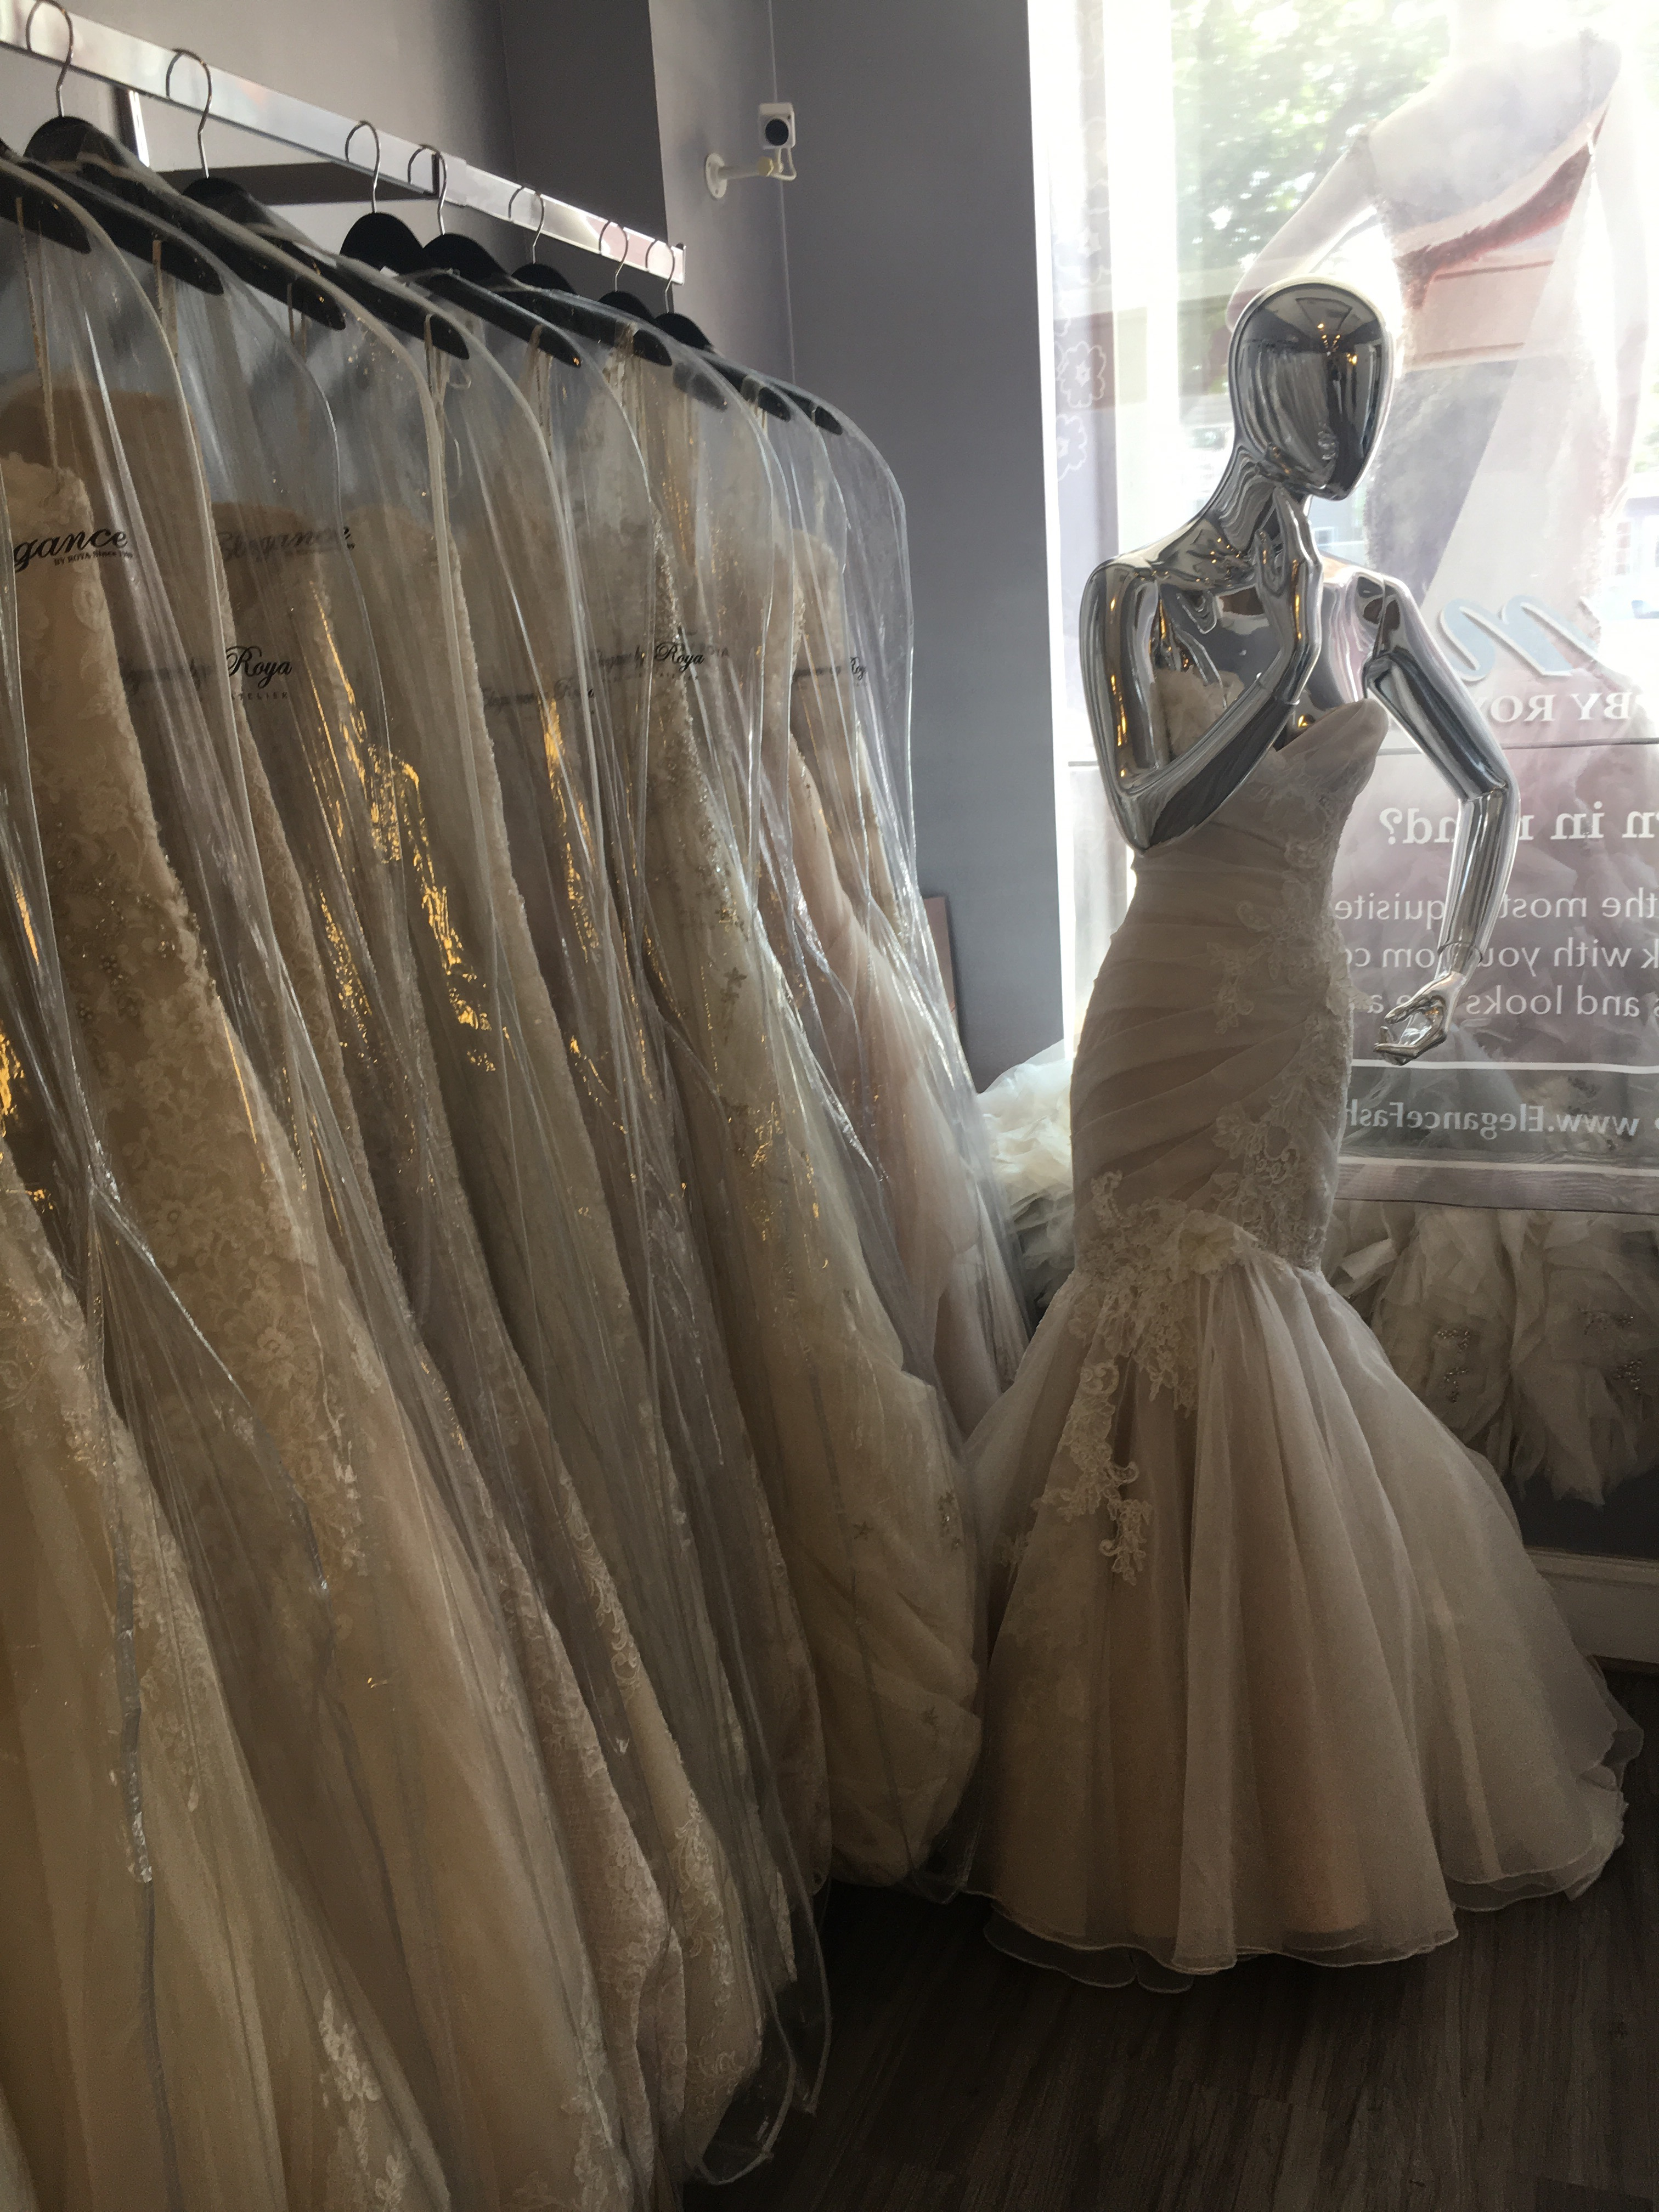 These are a few dresses at the second store we went to, where I found the perfect dress!